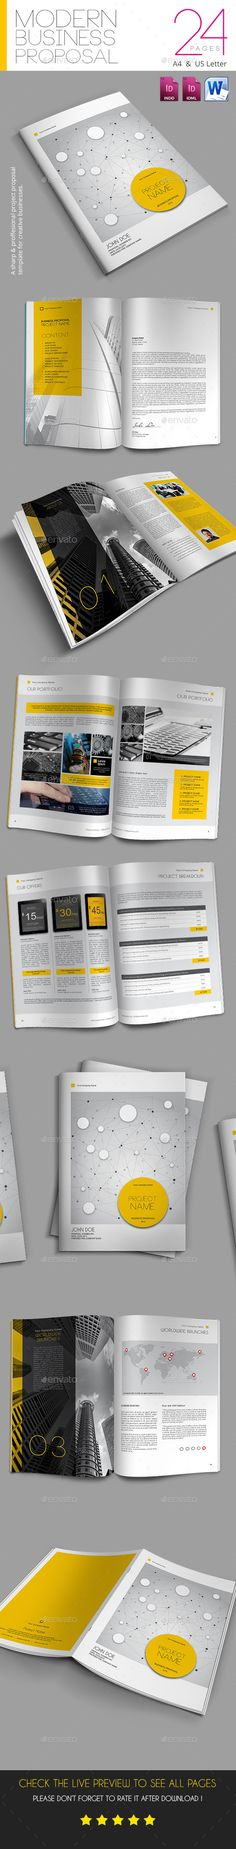 Proposal @creativework247 Brochure Design - Brochure layout